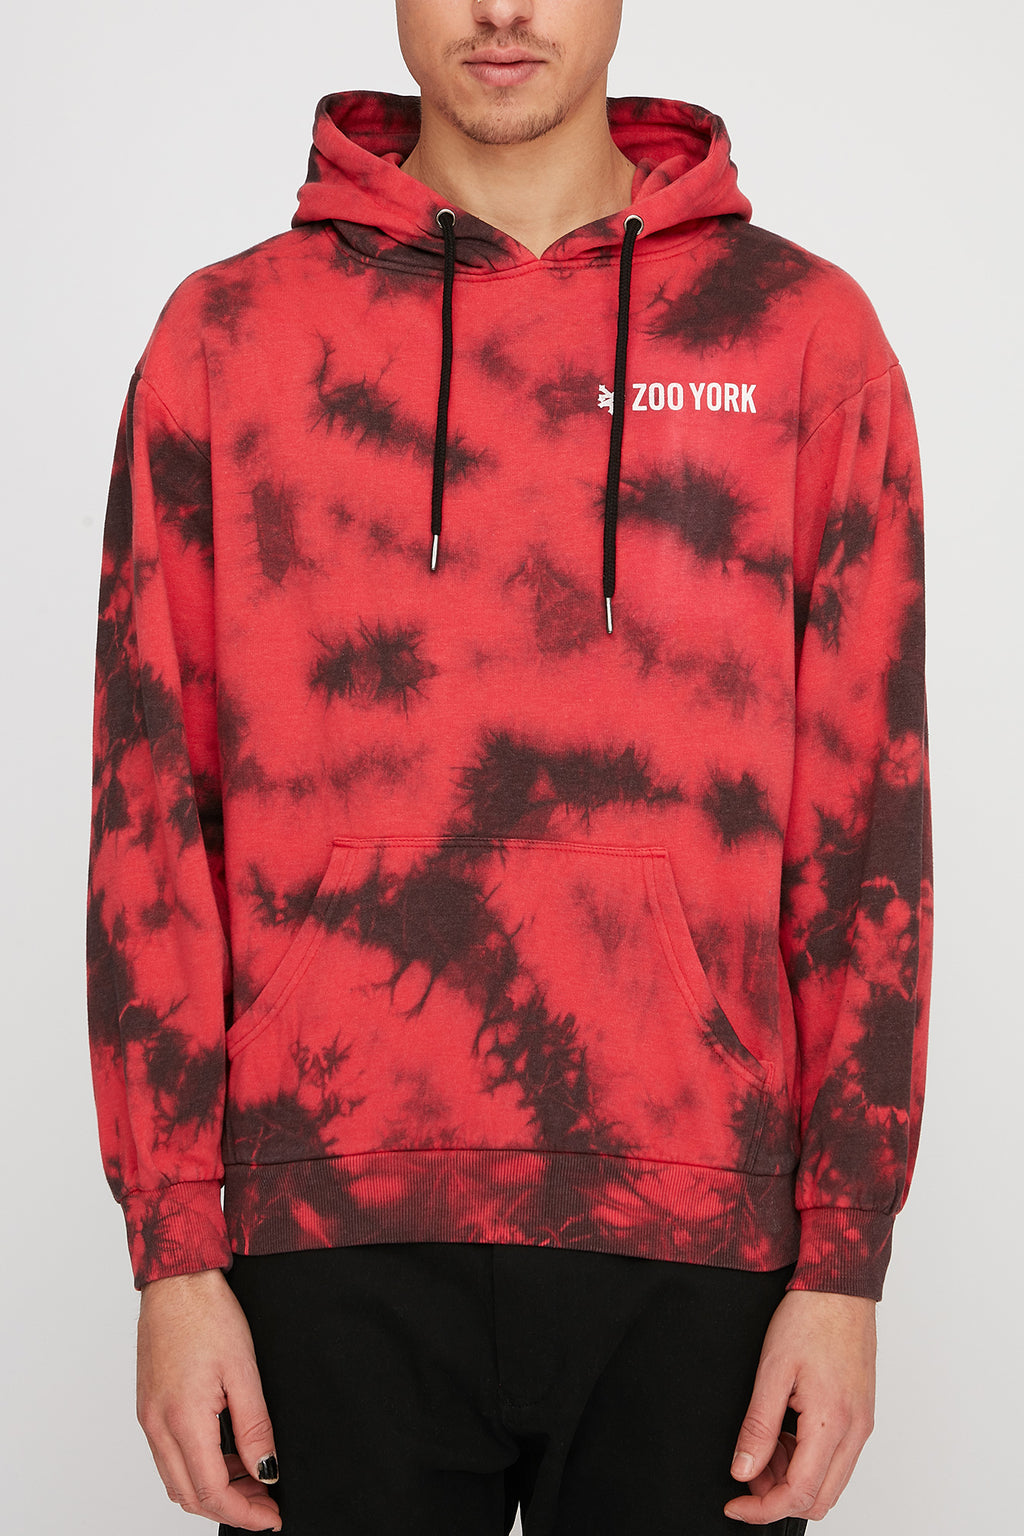 Zoo York Mens Optical Illusion Tie Dye Hoodie